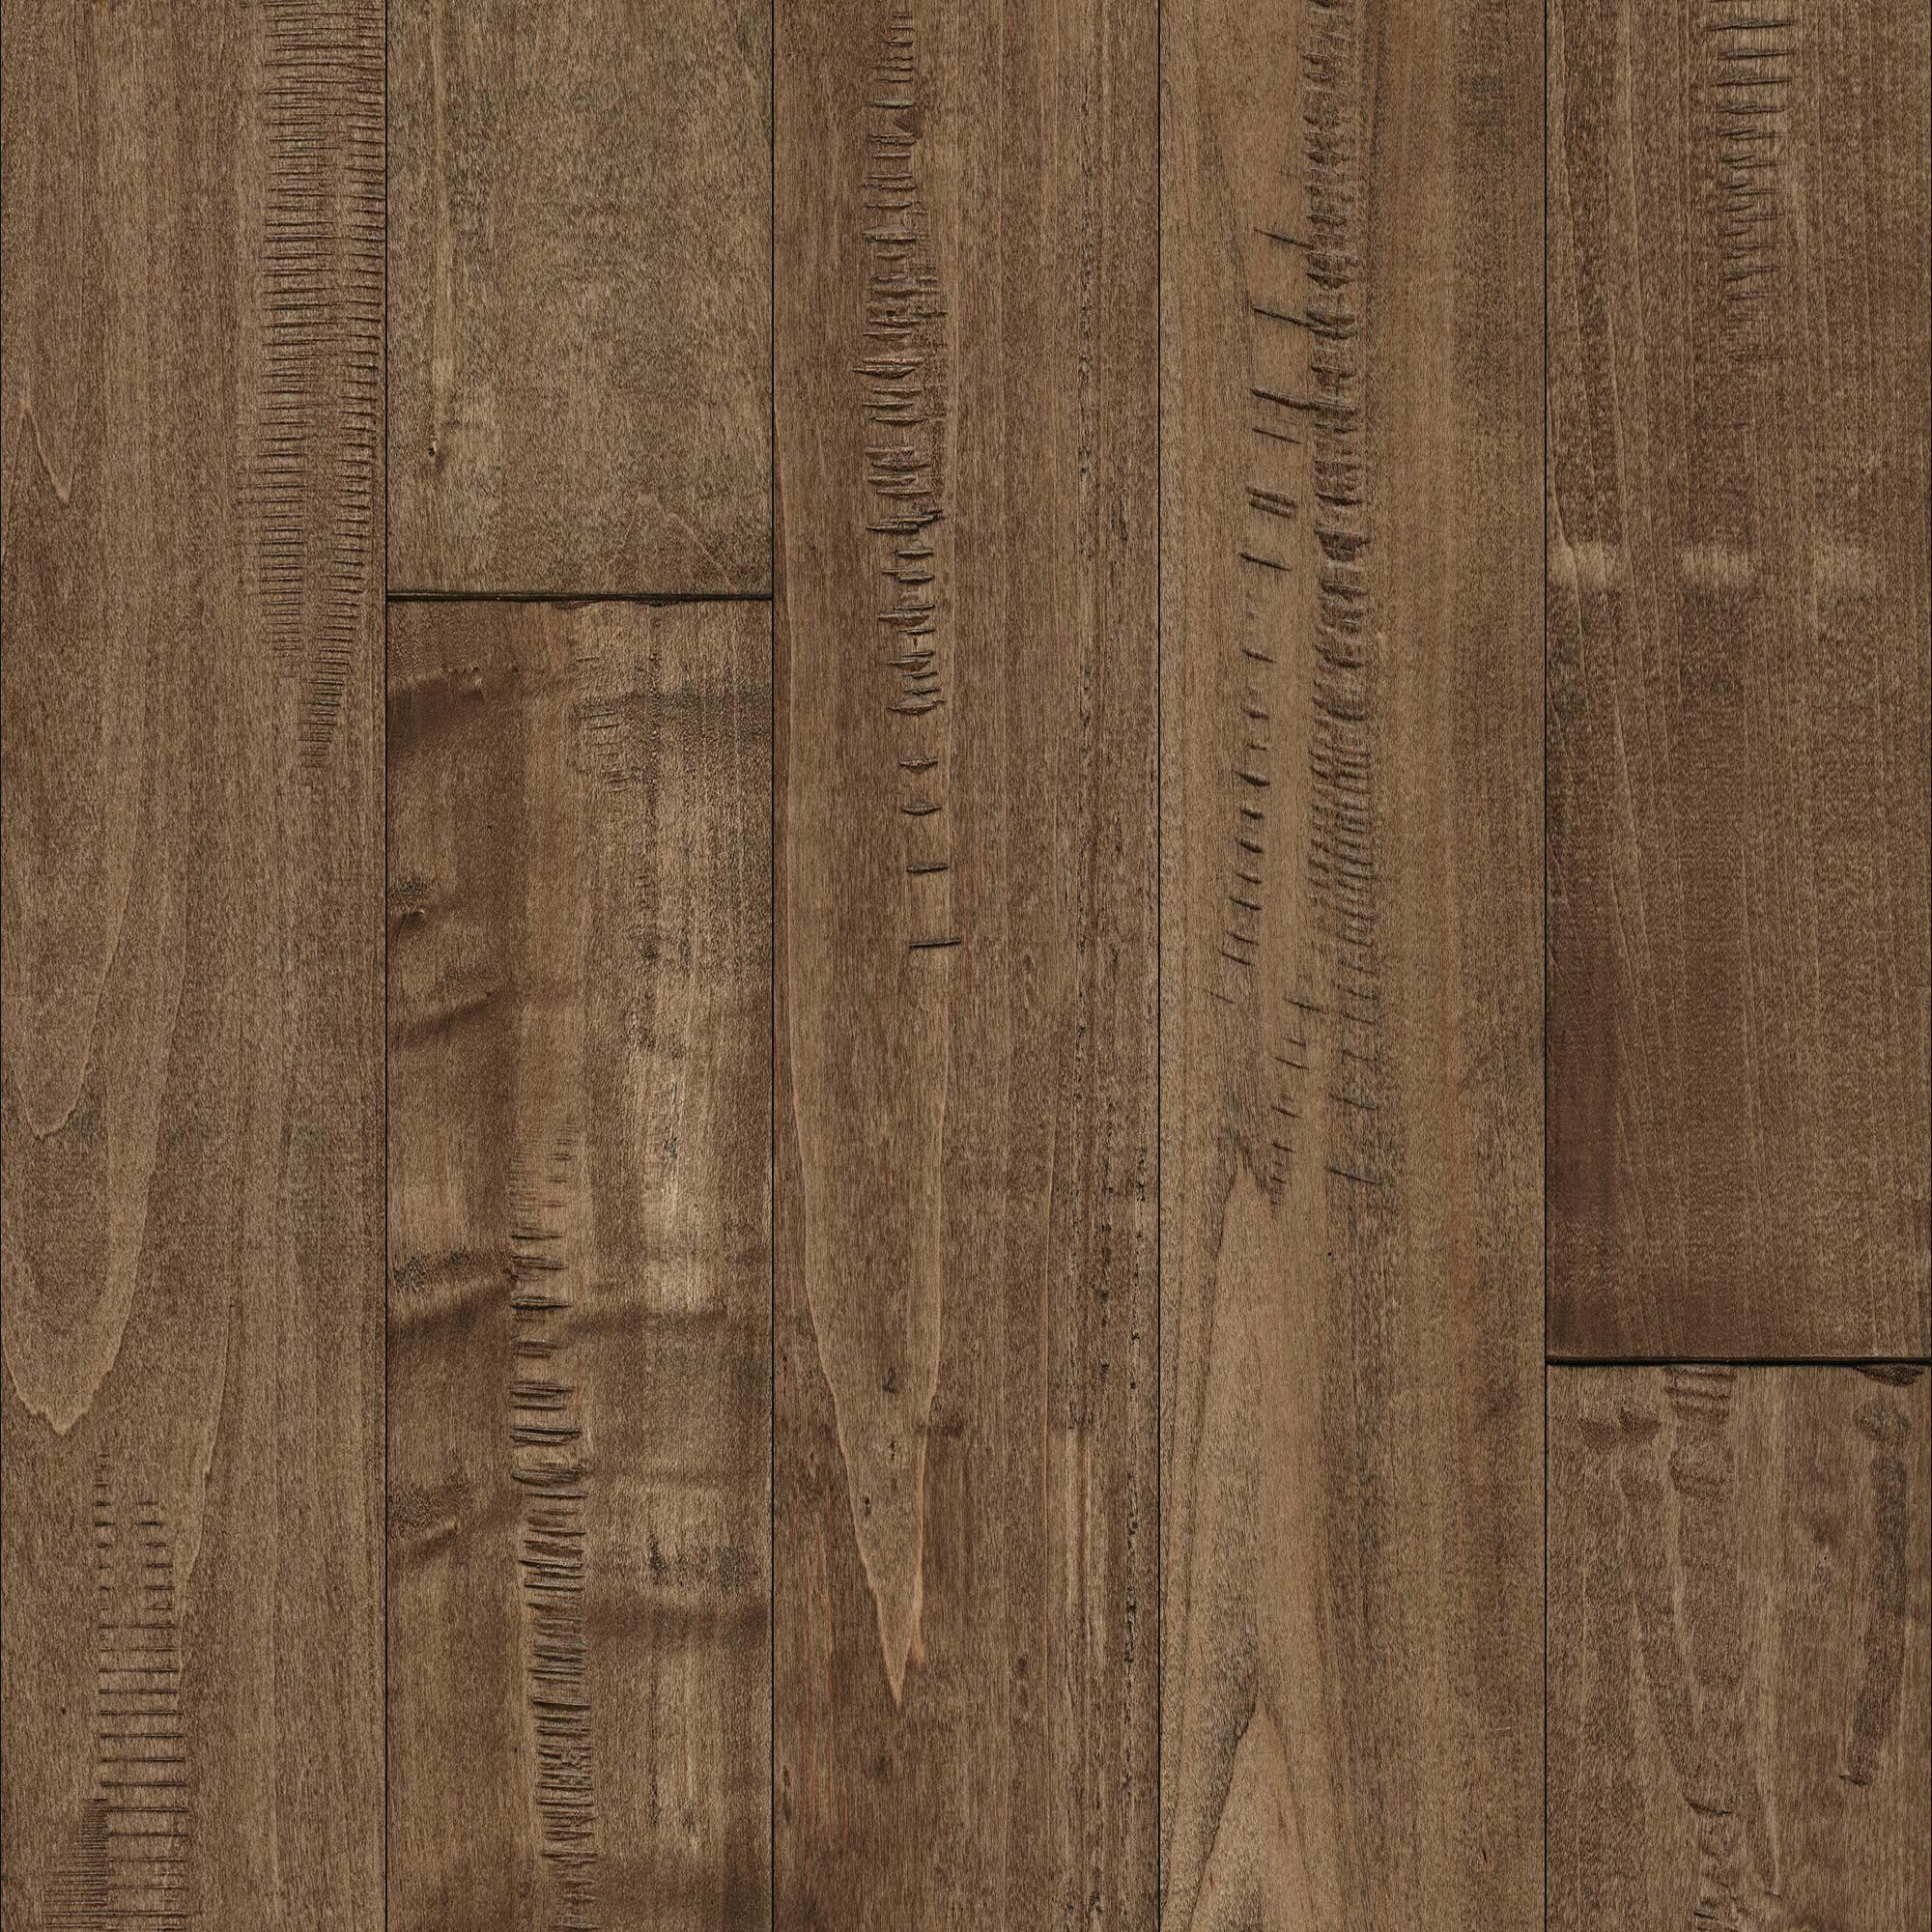 maple hardwood flooring hand scraped of kingsmill pacific maple handscraped 4 wide 3 4 solid hardwood flooring intended for pacific m upac4 4 x 60 approved